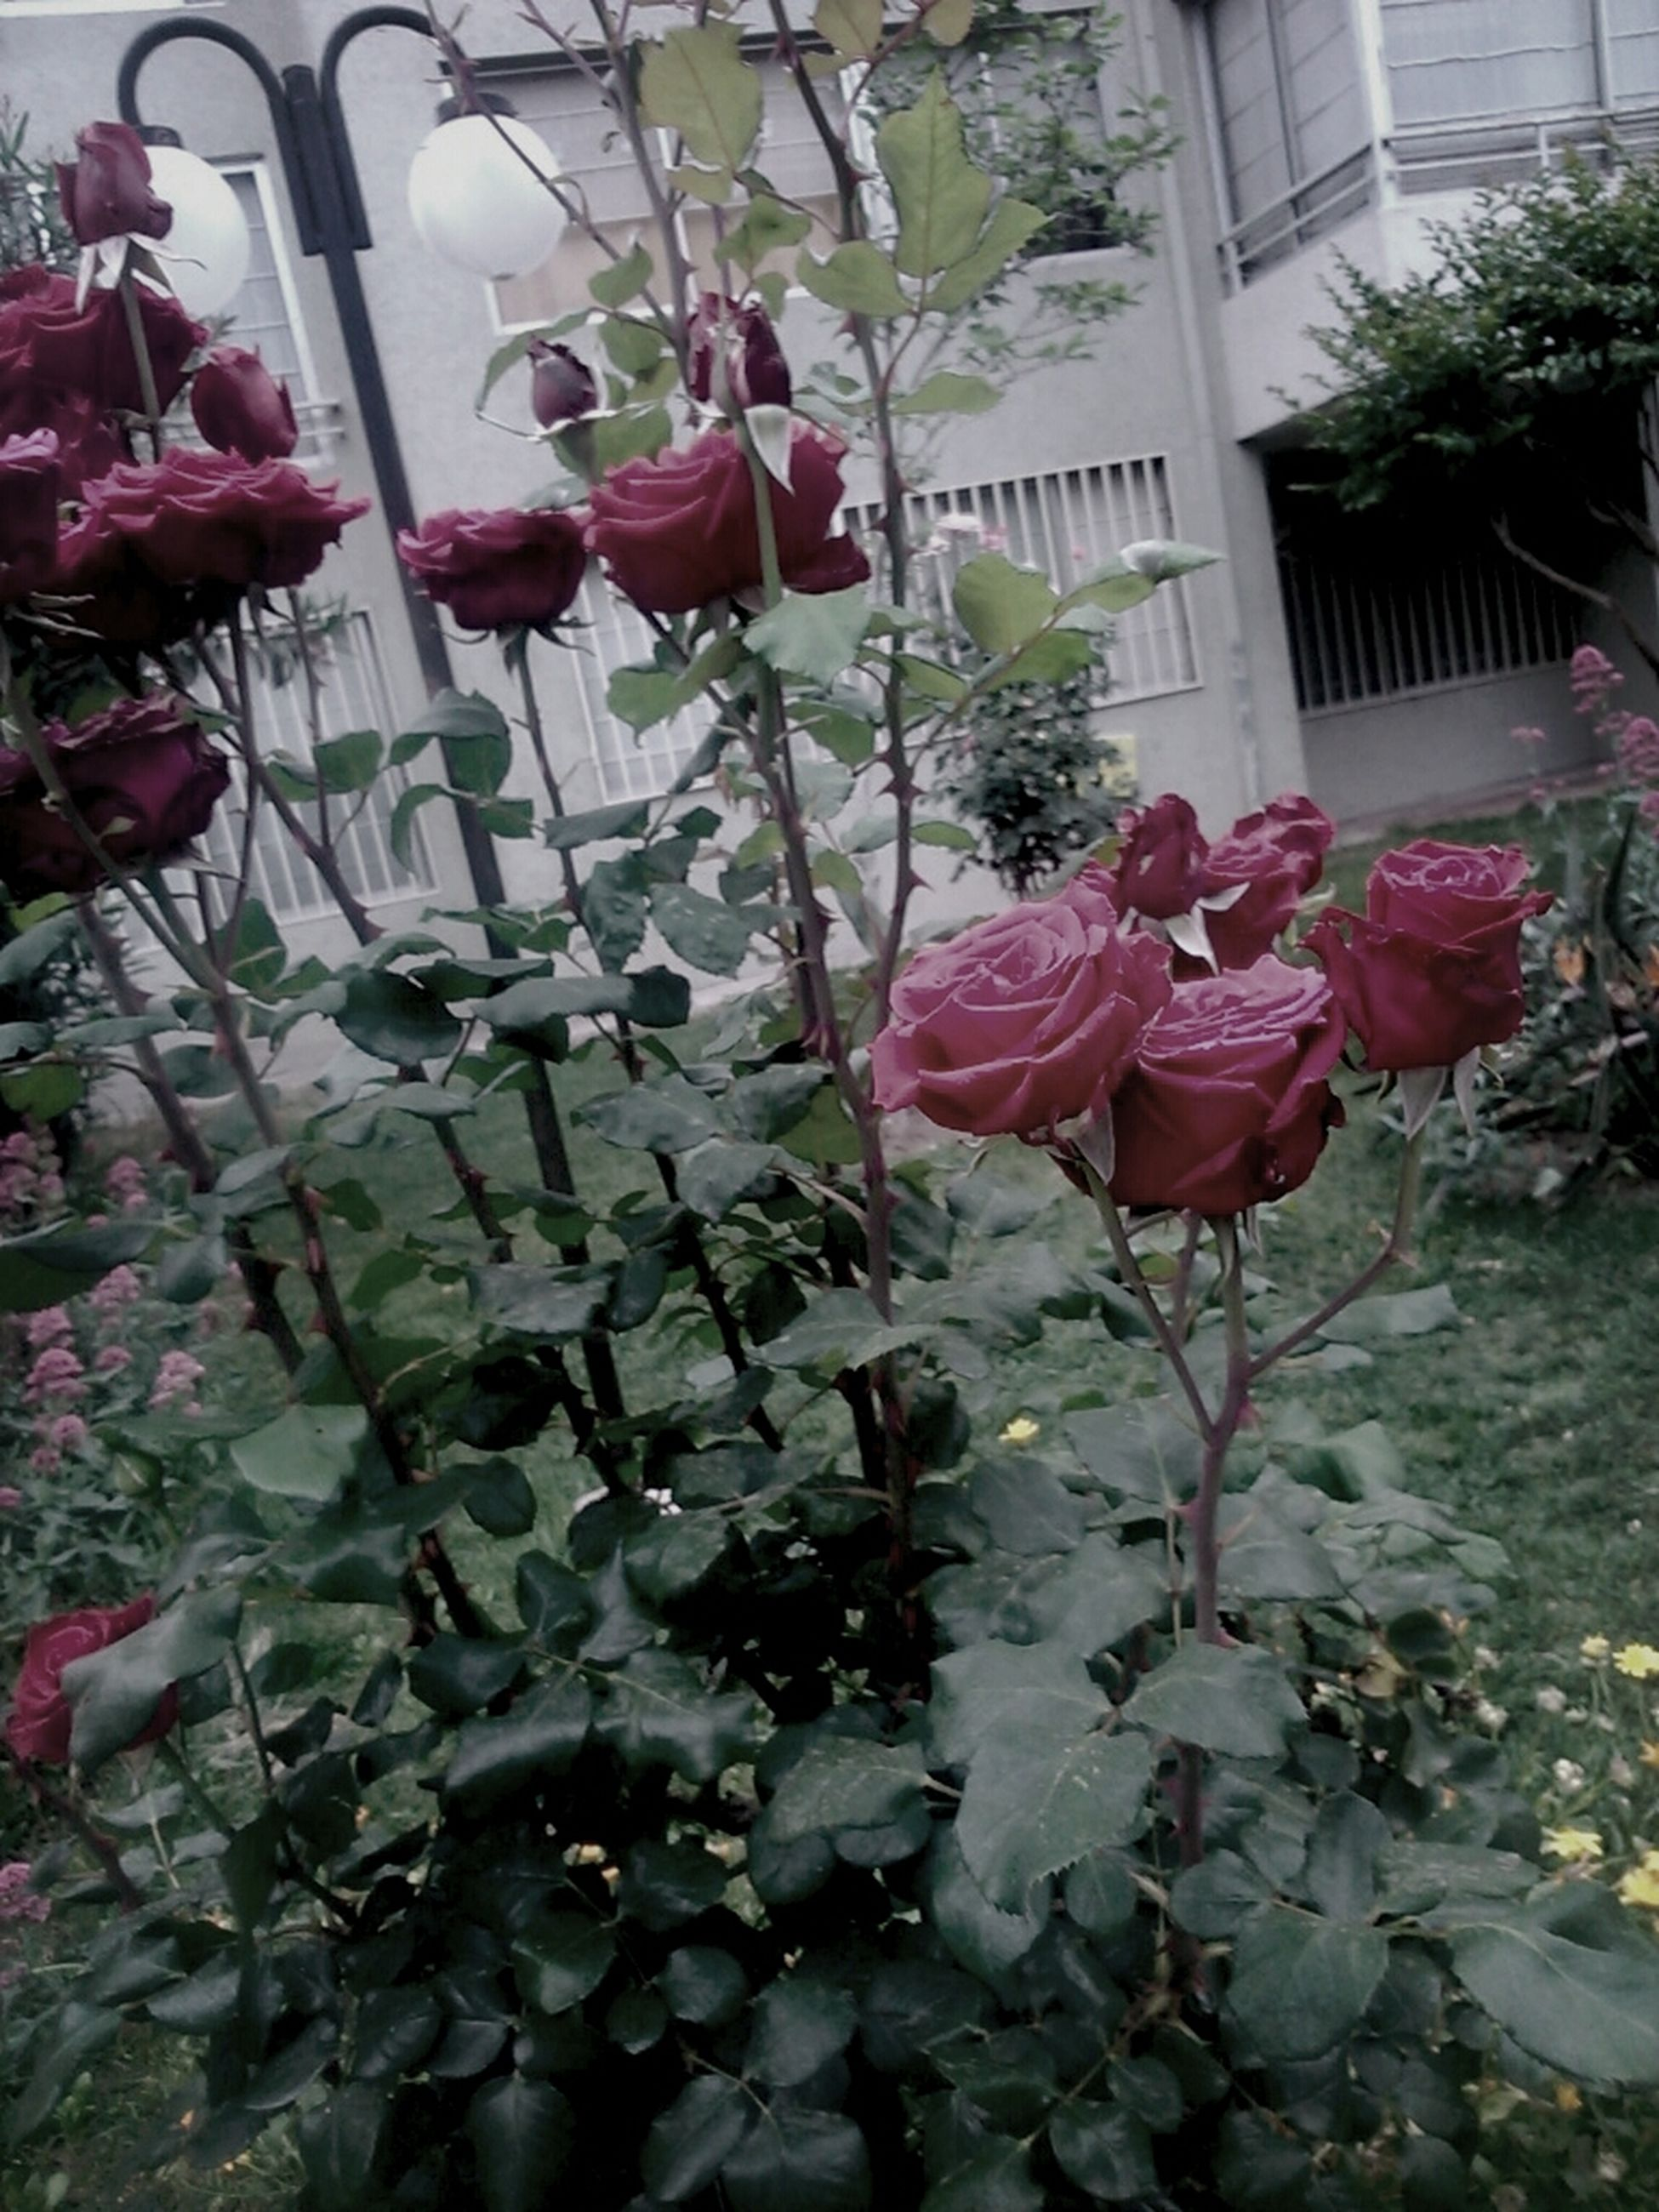 flower, plant, growth, leaf, nature, potted plant, pink color, built structure, day, fragility, building exterior, architecture, freshness, outdoors, beauty in nature, no people, hanging, front or back yard, wall - building feature, house